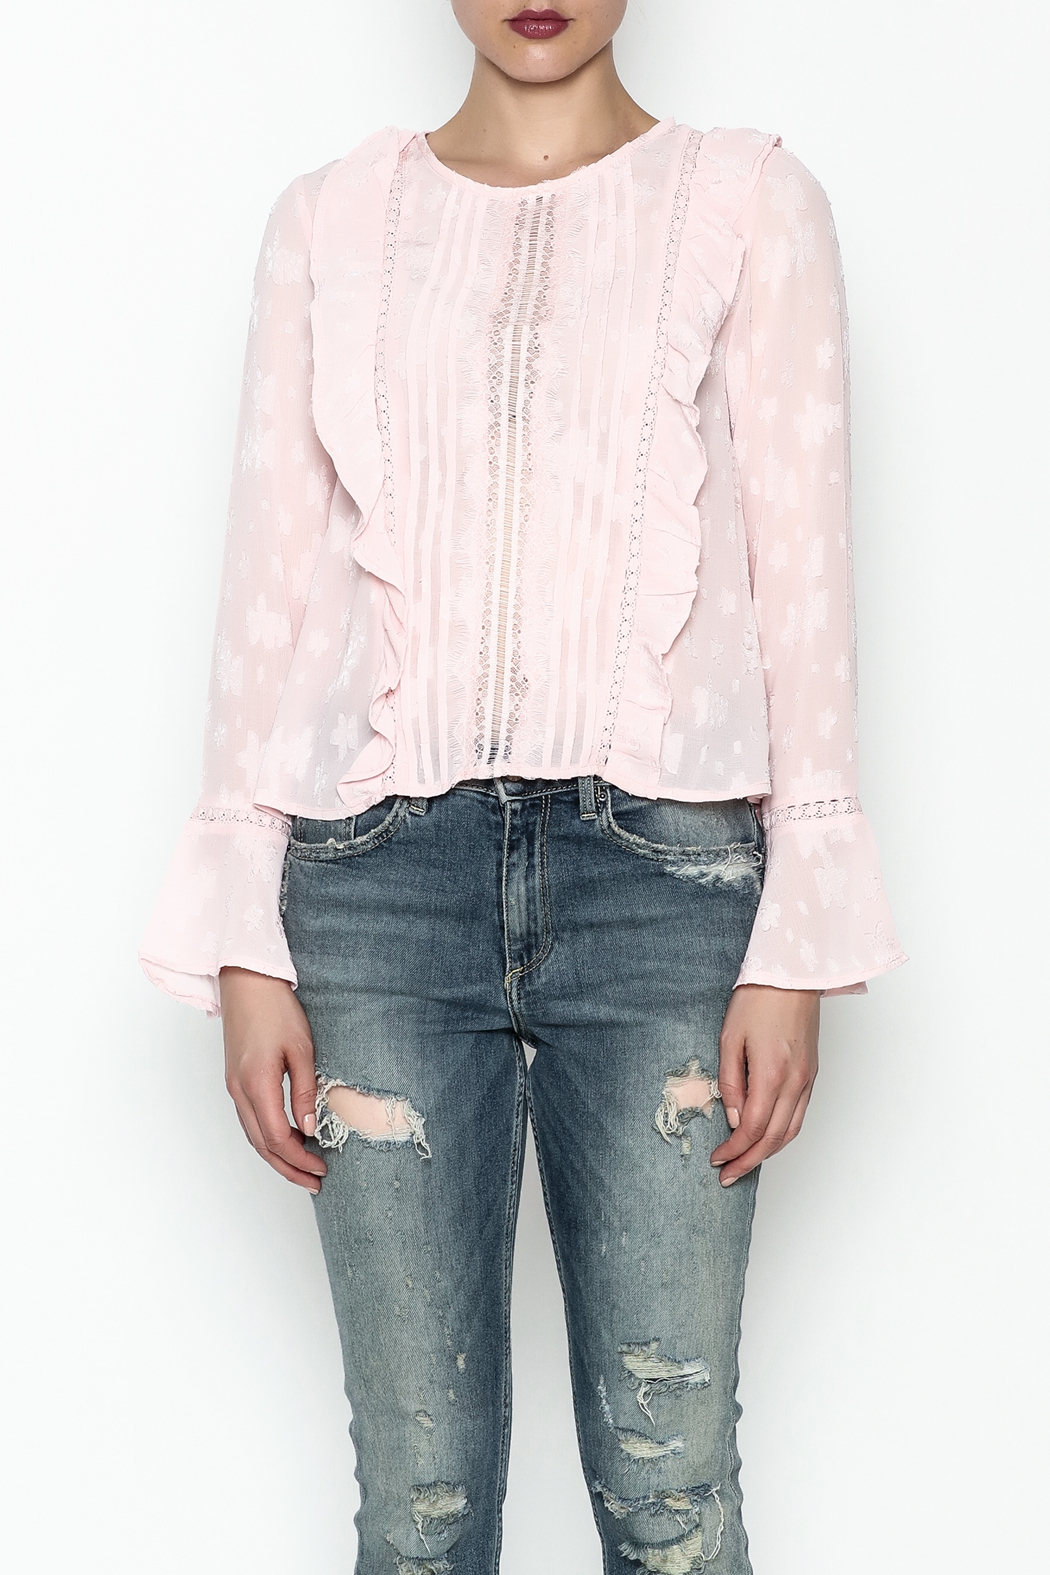 Ark & Co. Pullover Ruffle Blouse - Front Full Image